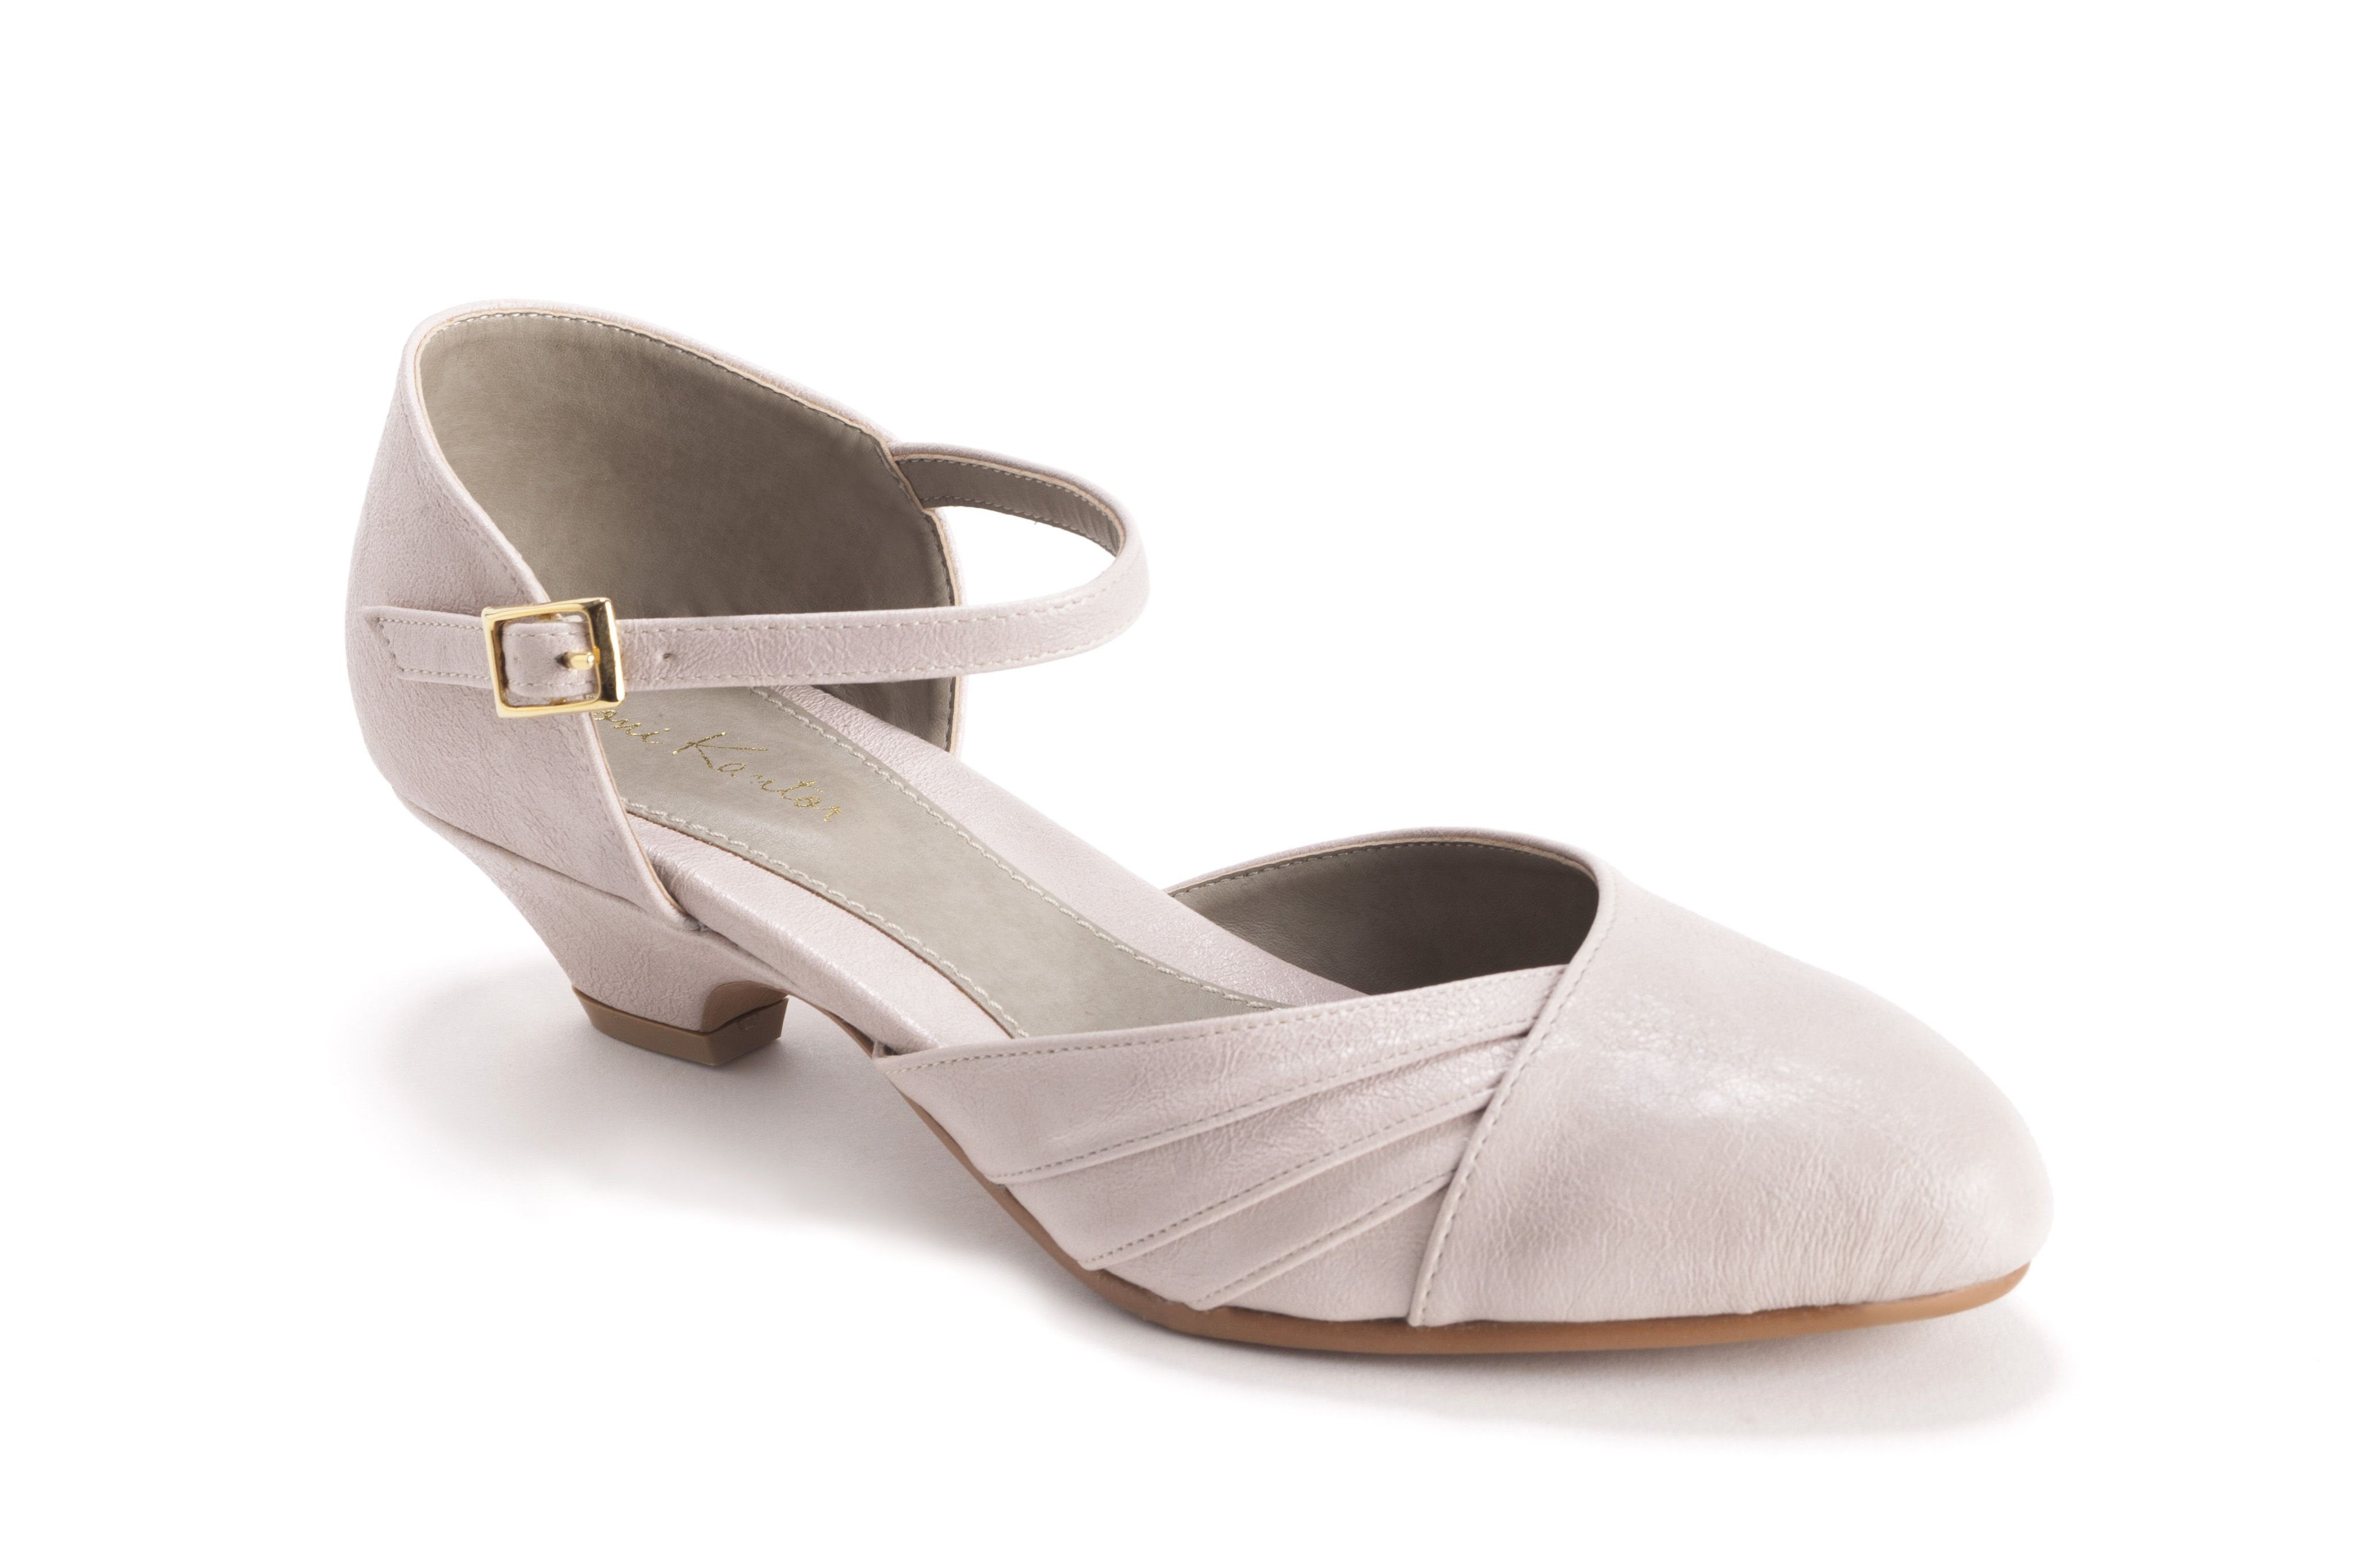 Vintage Style Vegan Wedding Shoes By Roni Kantor Available On Etsy Https